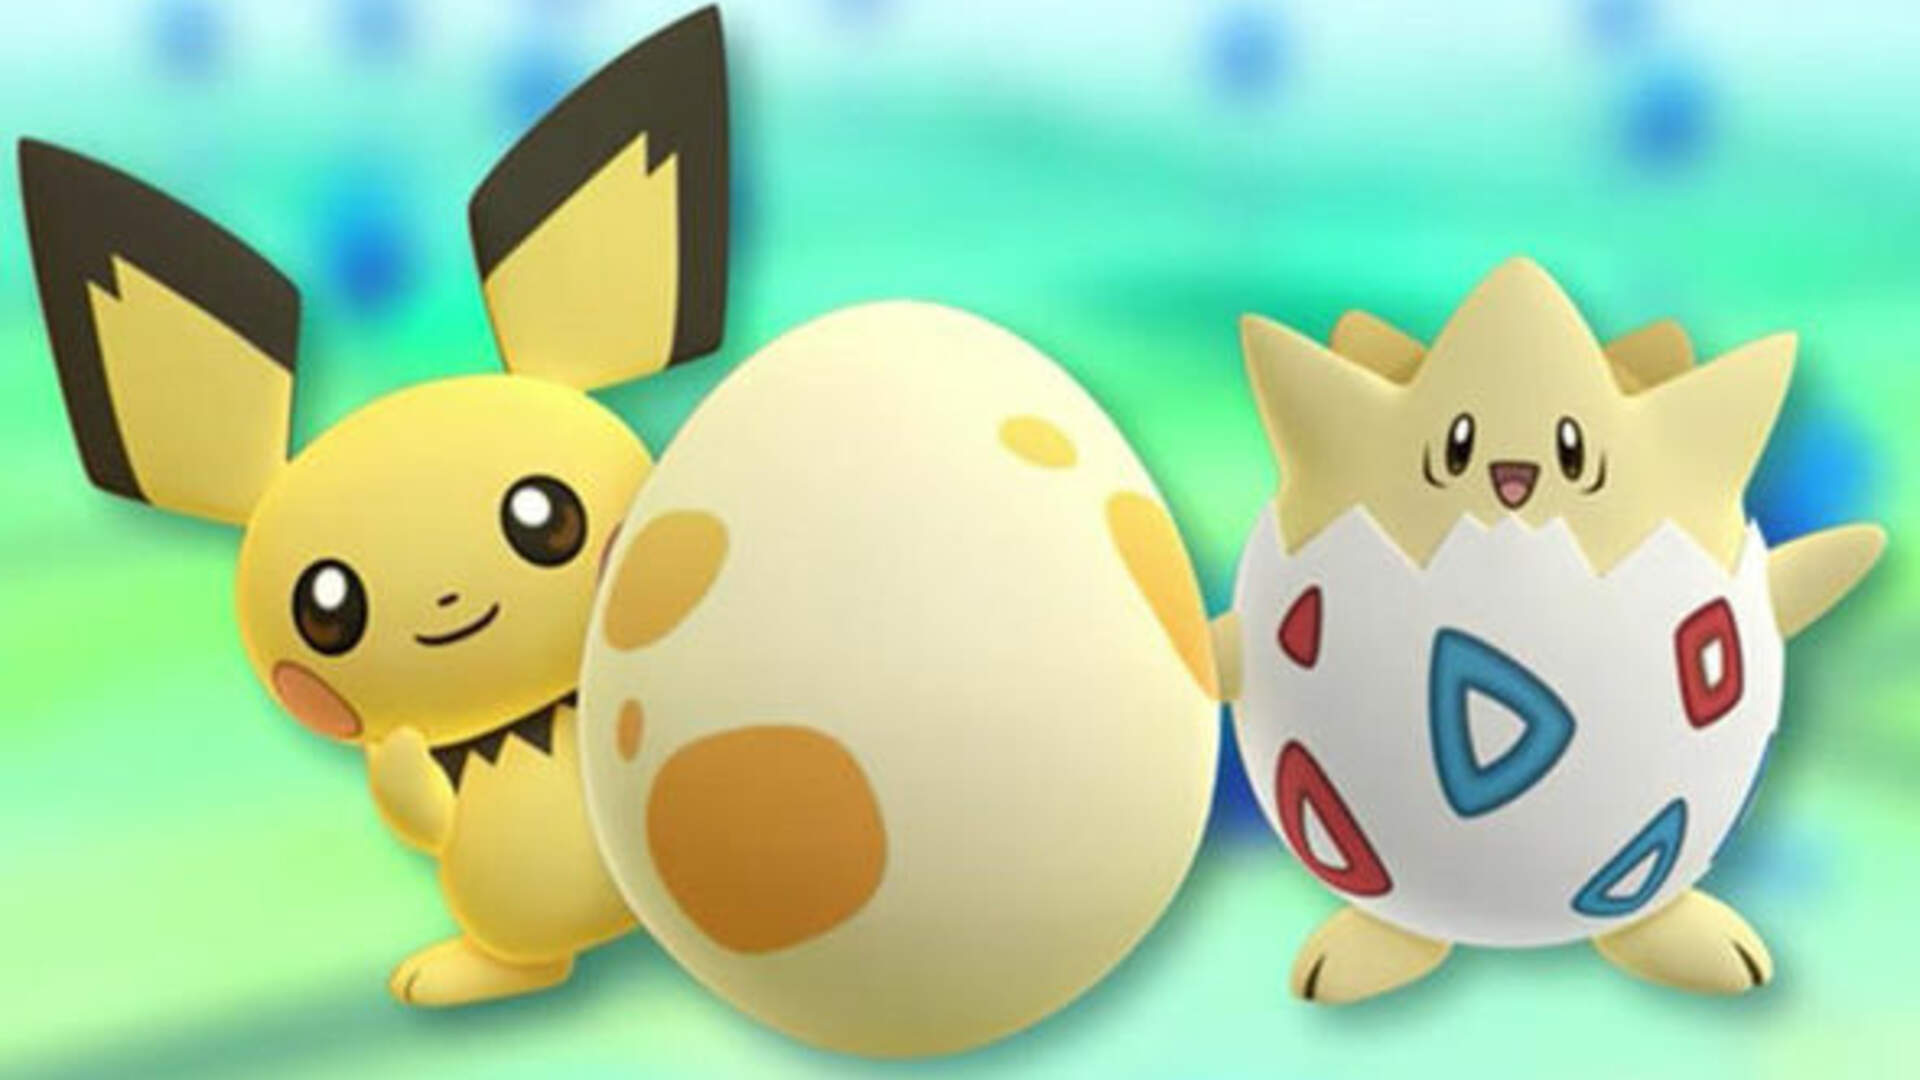 Pokemon GO Egg Chart January 2019 - How to Hatch Eggs in Pokemon GO